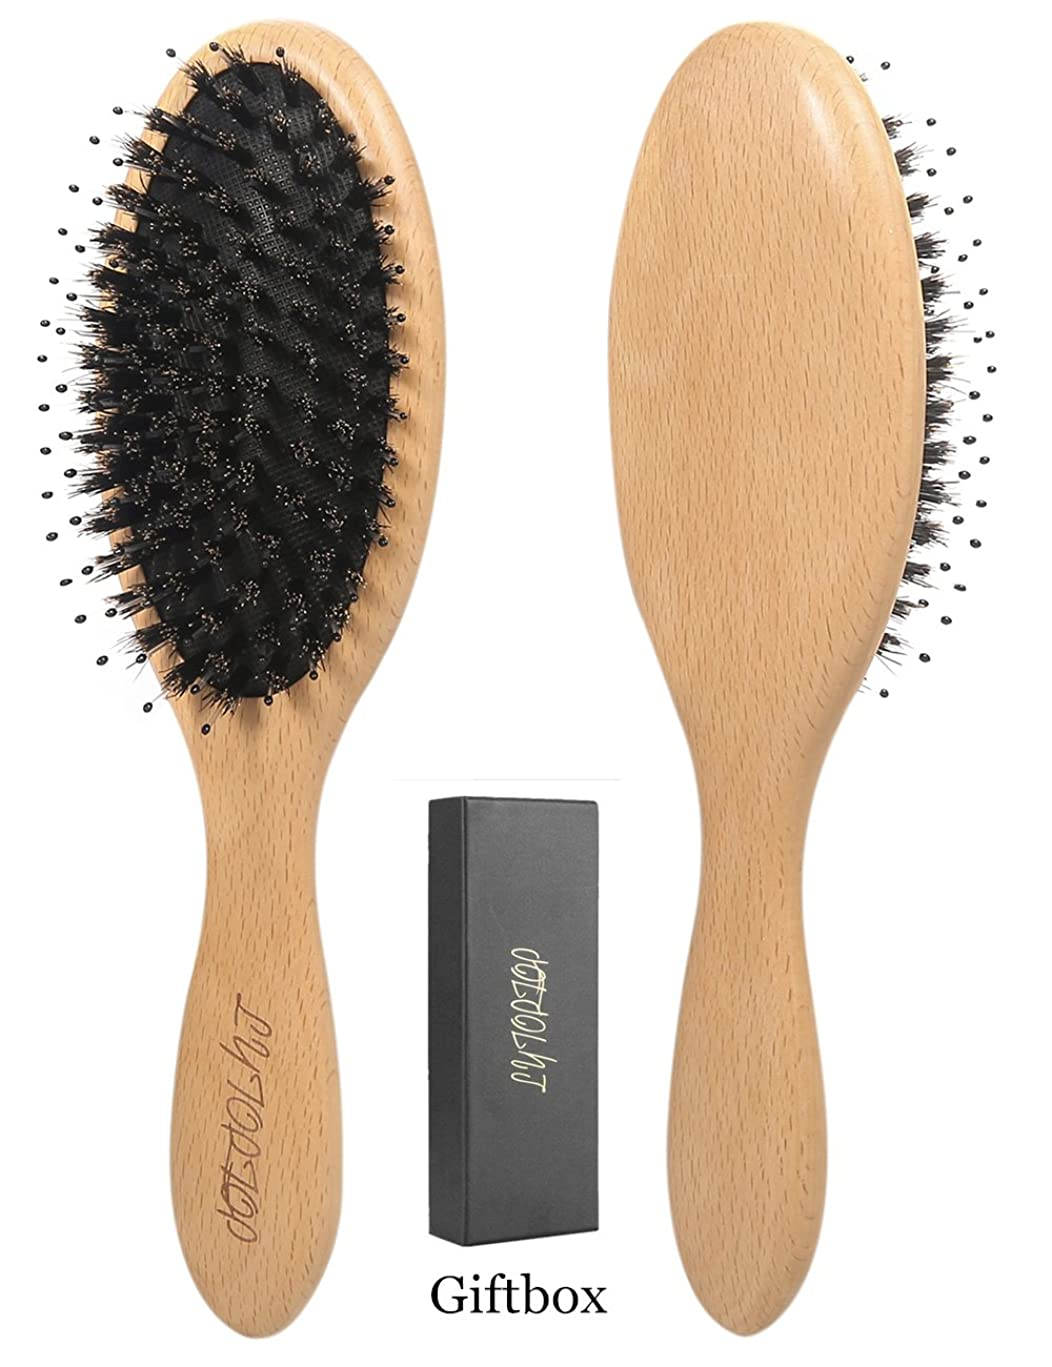 Boar Bristle Hair Brush With Detangle Pins, Natural Wooden Hairbrushes for Women Men and Kids, Best for Thick,Curly,Dry or Damaged Hair,Reduce Frizz, Add Shine & Improve Hair Texture(Giftbox)